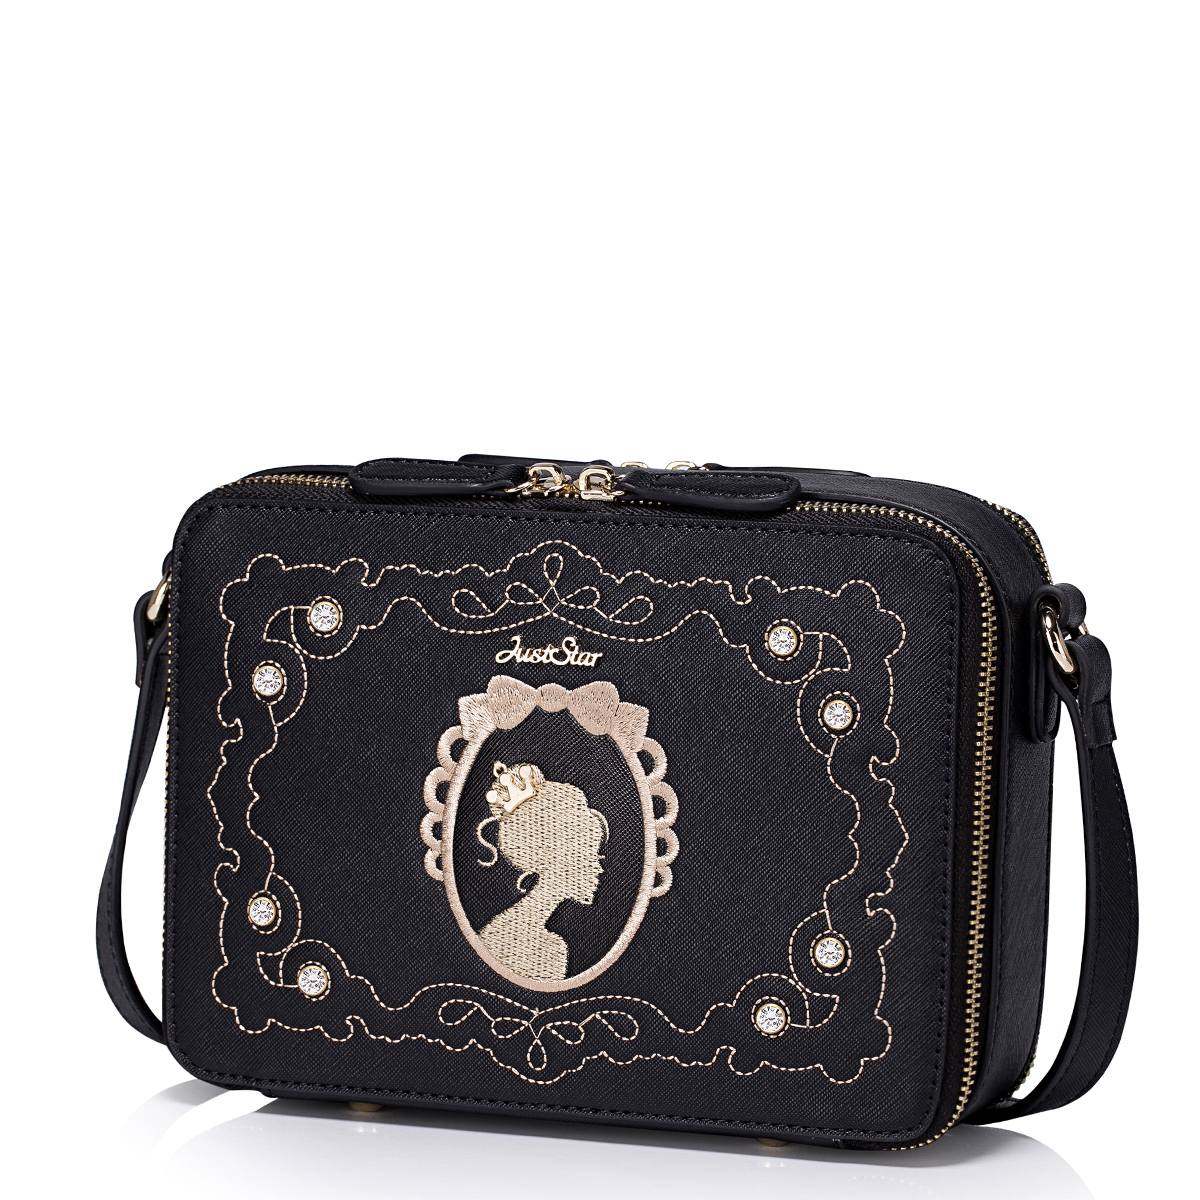 Magic Mirror Brand Fashion Vintage Diamonds Princess Women Handbag Shoulder Bag Small Messenger Bag Girls ladies Gifts bolsos artdeco точилка для карандашей magic liner